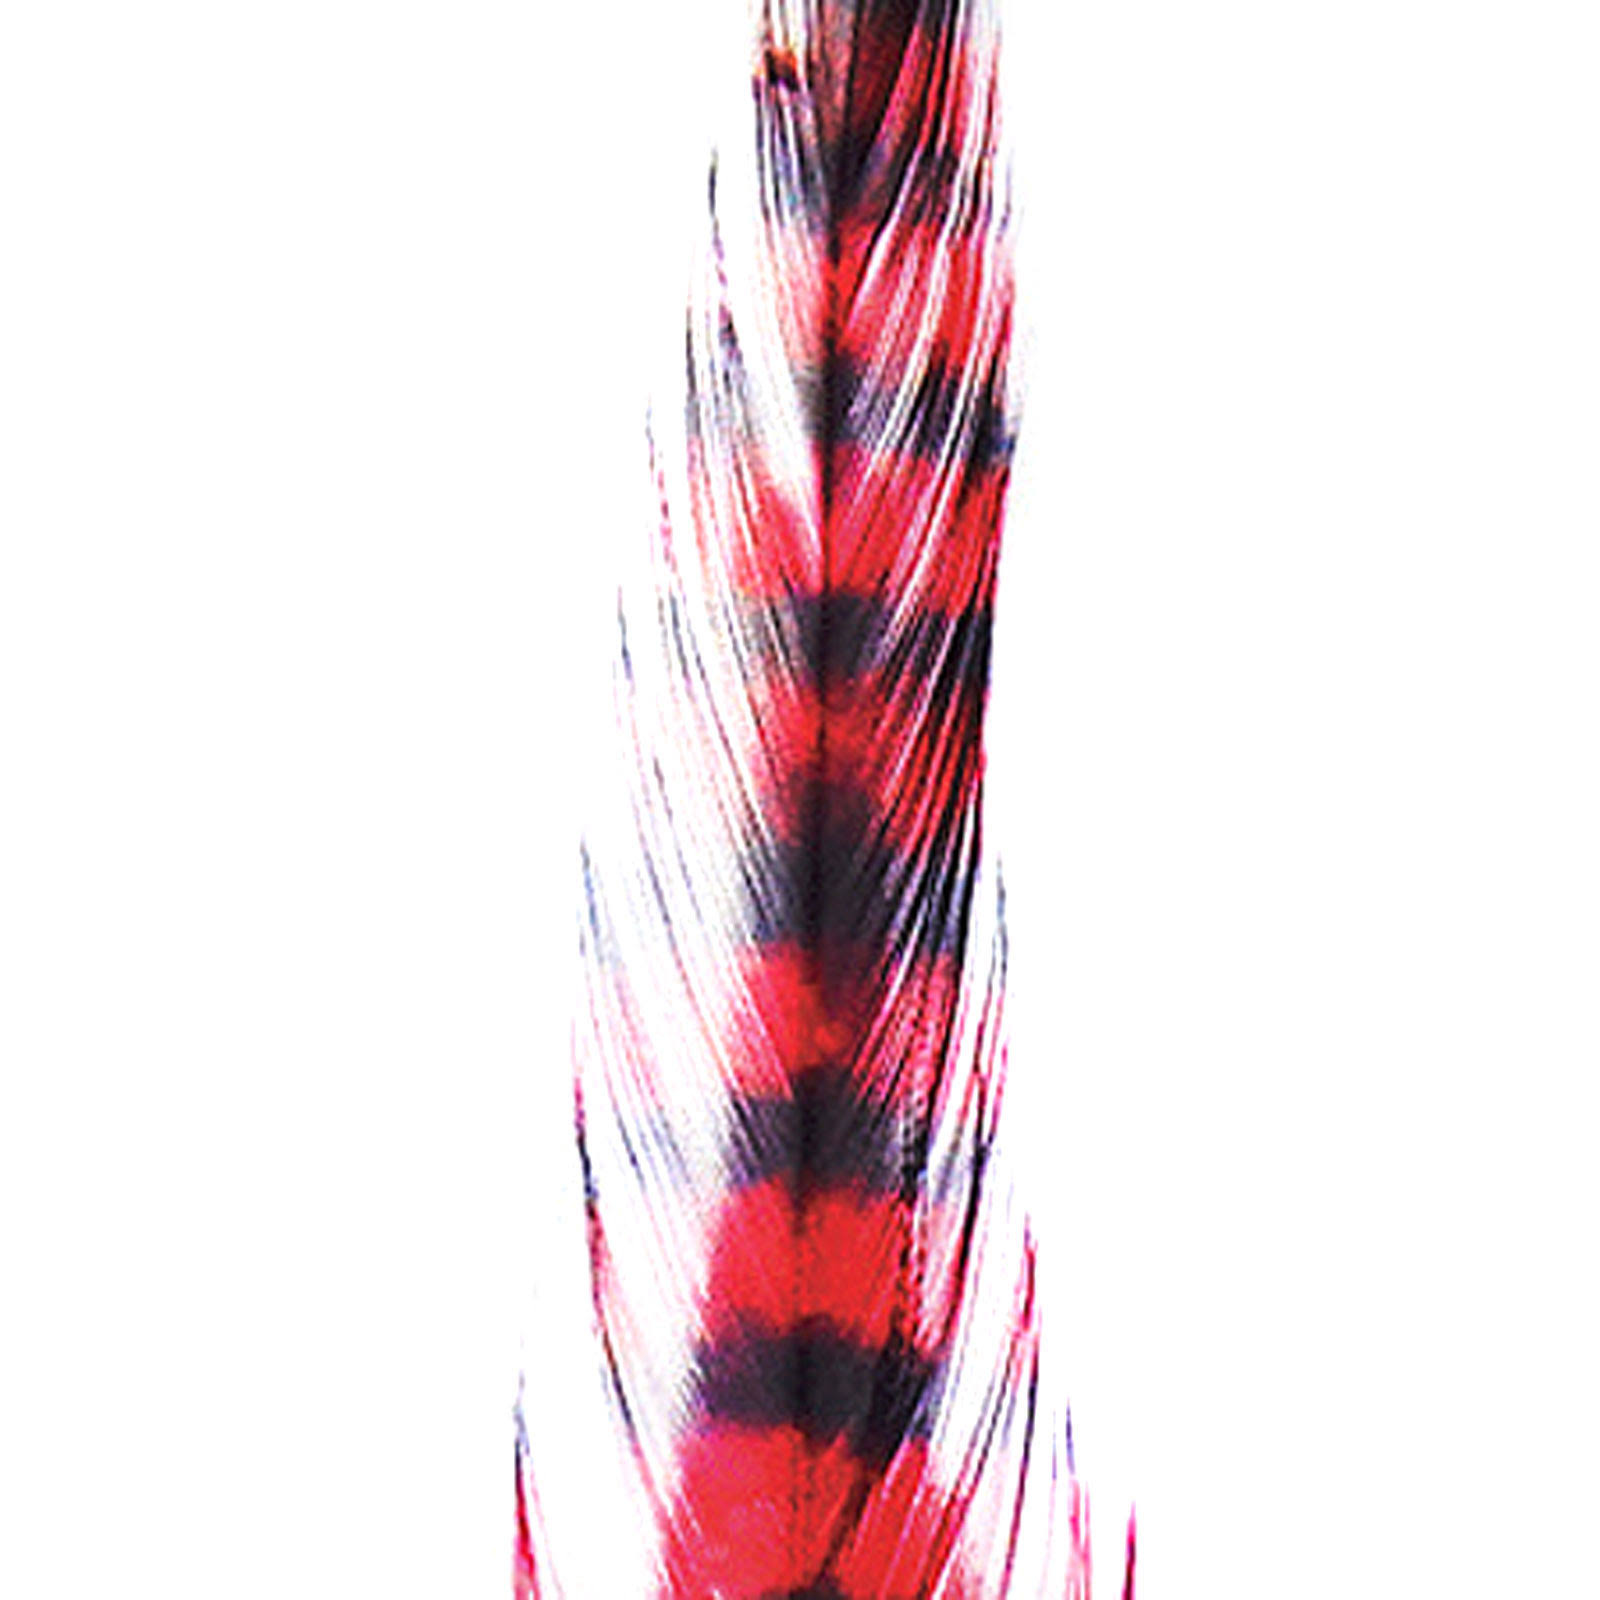 Barred Saddle Hackle - Tan/Black